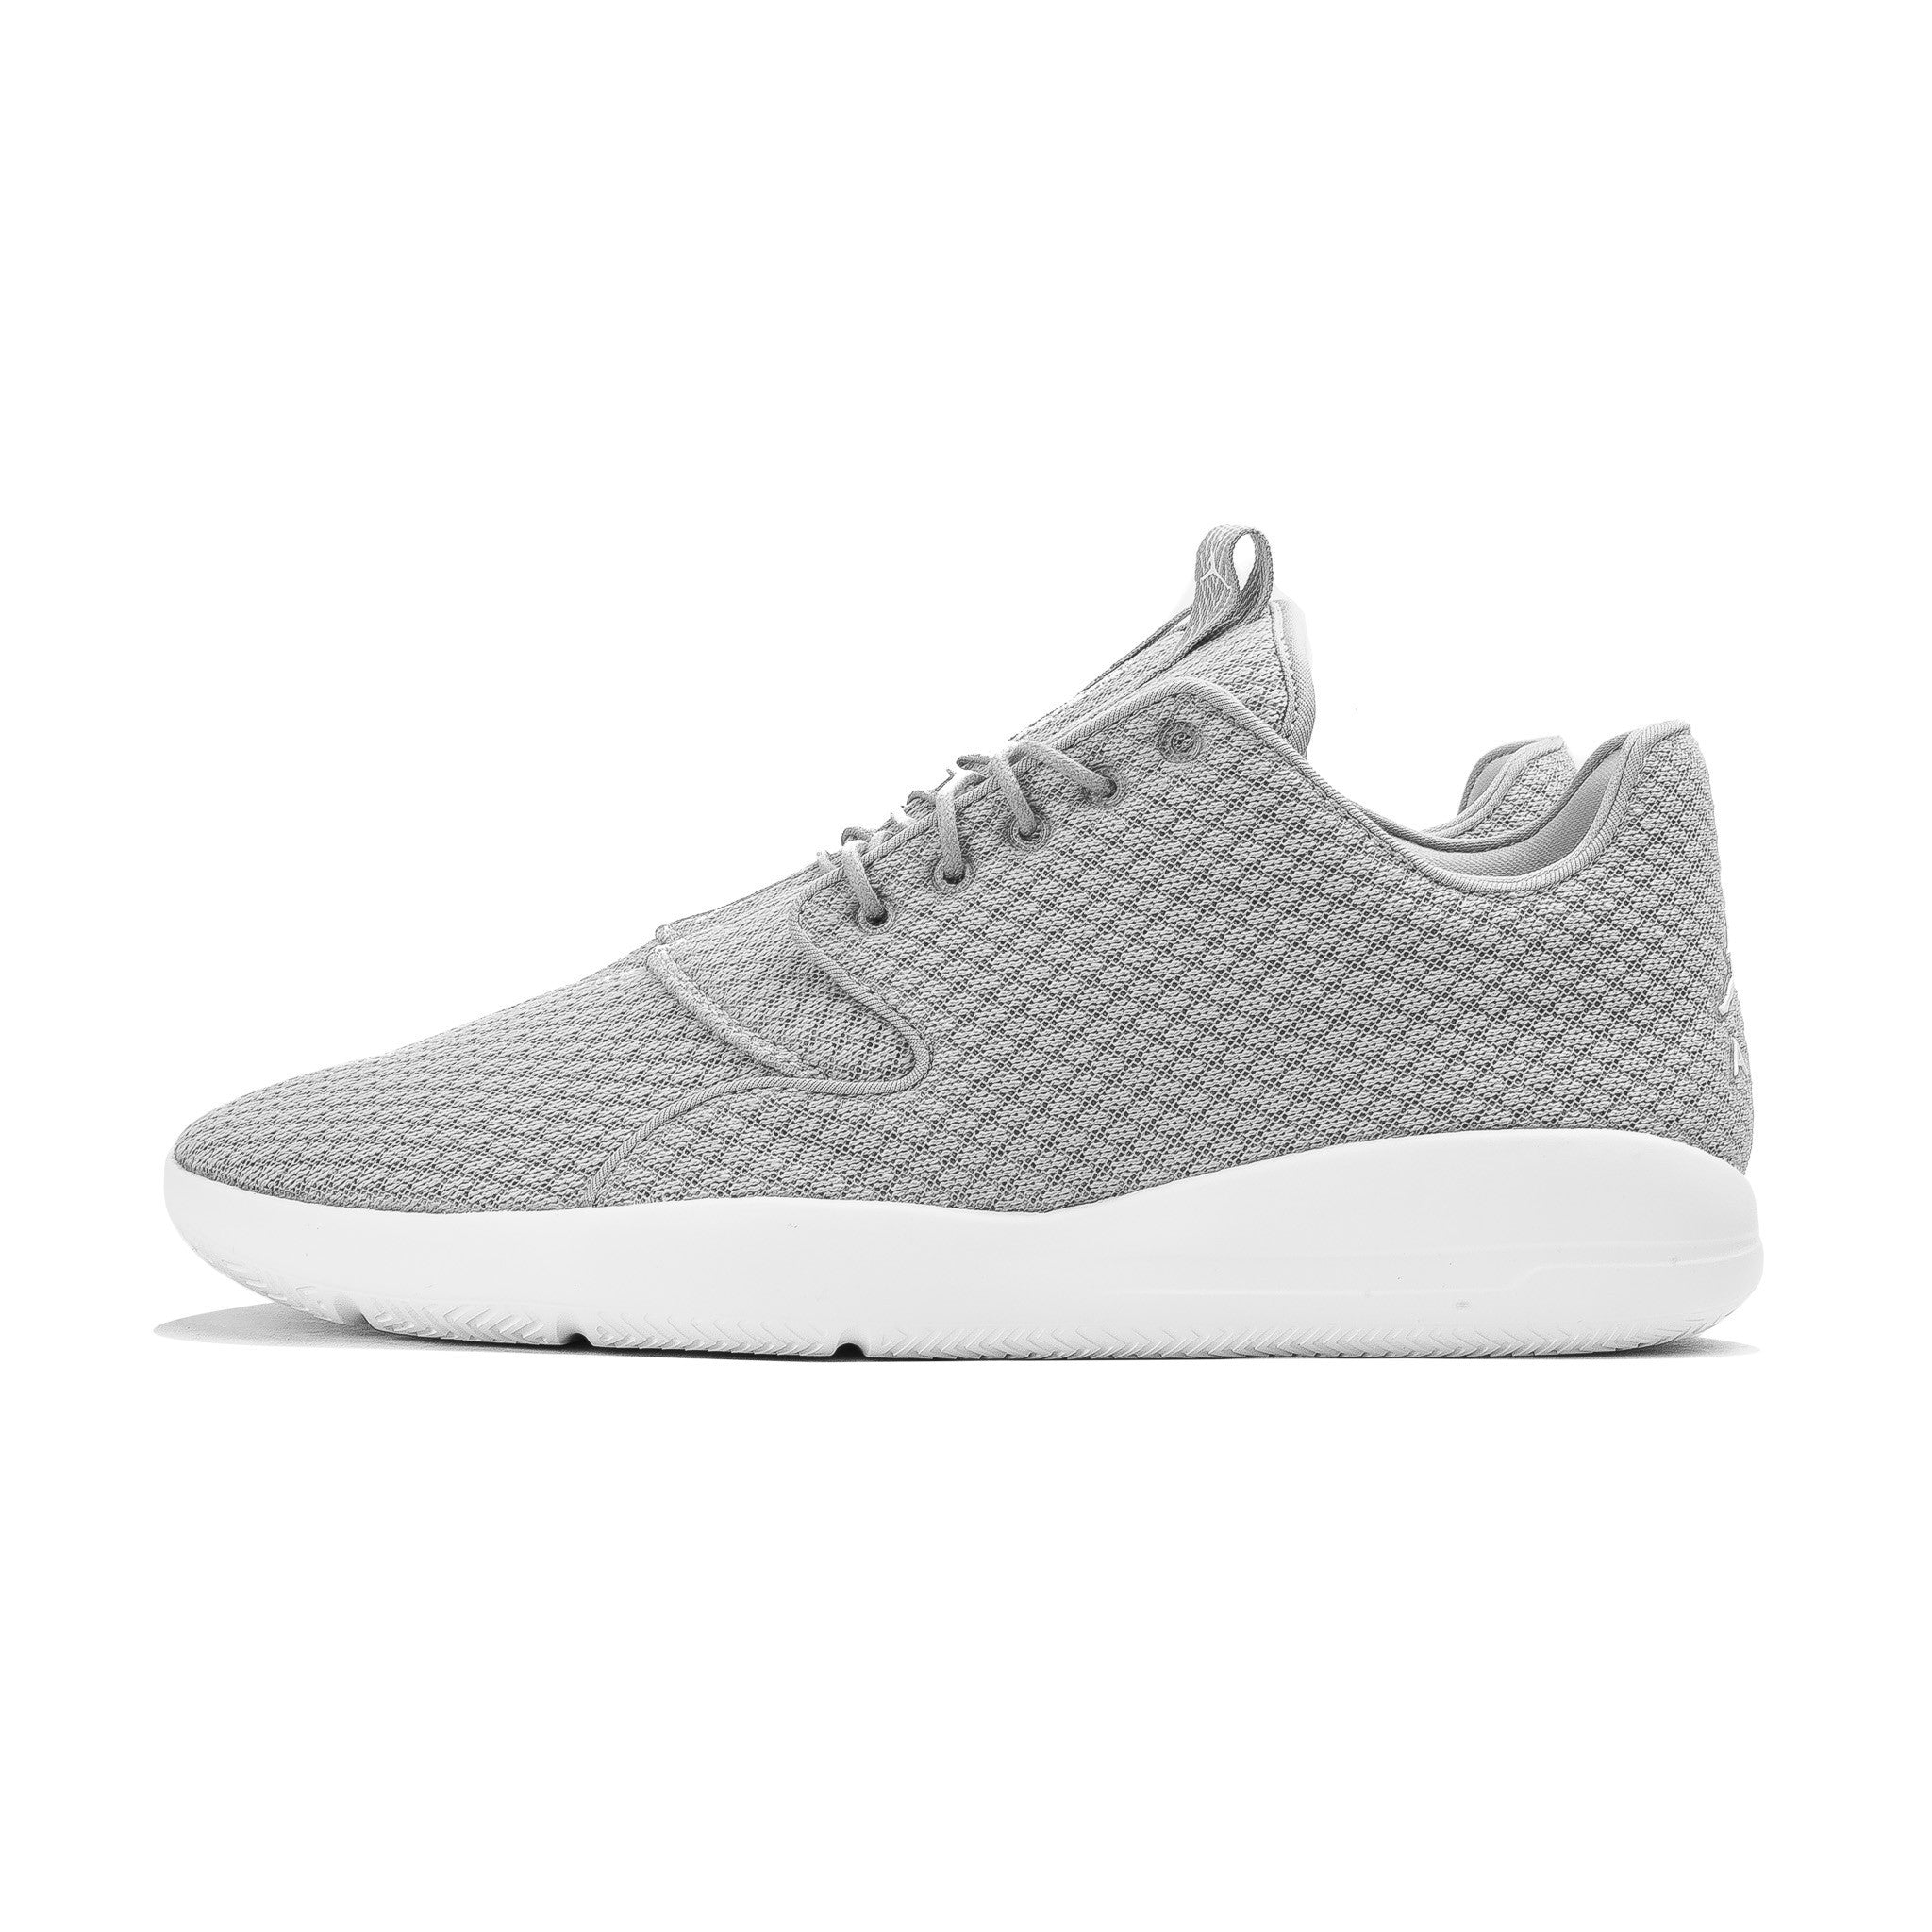 Jordan Eclipse 724010-033